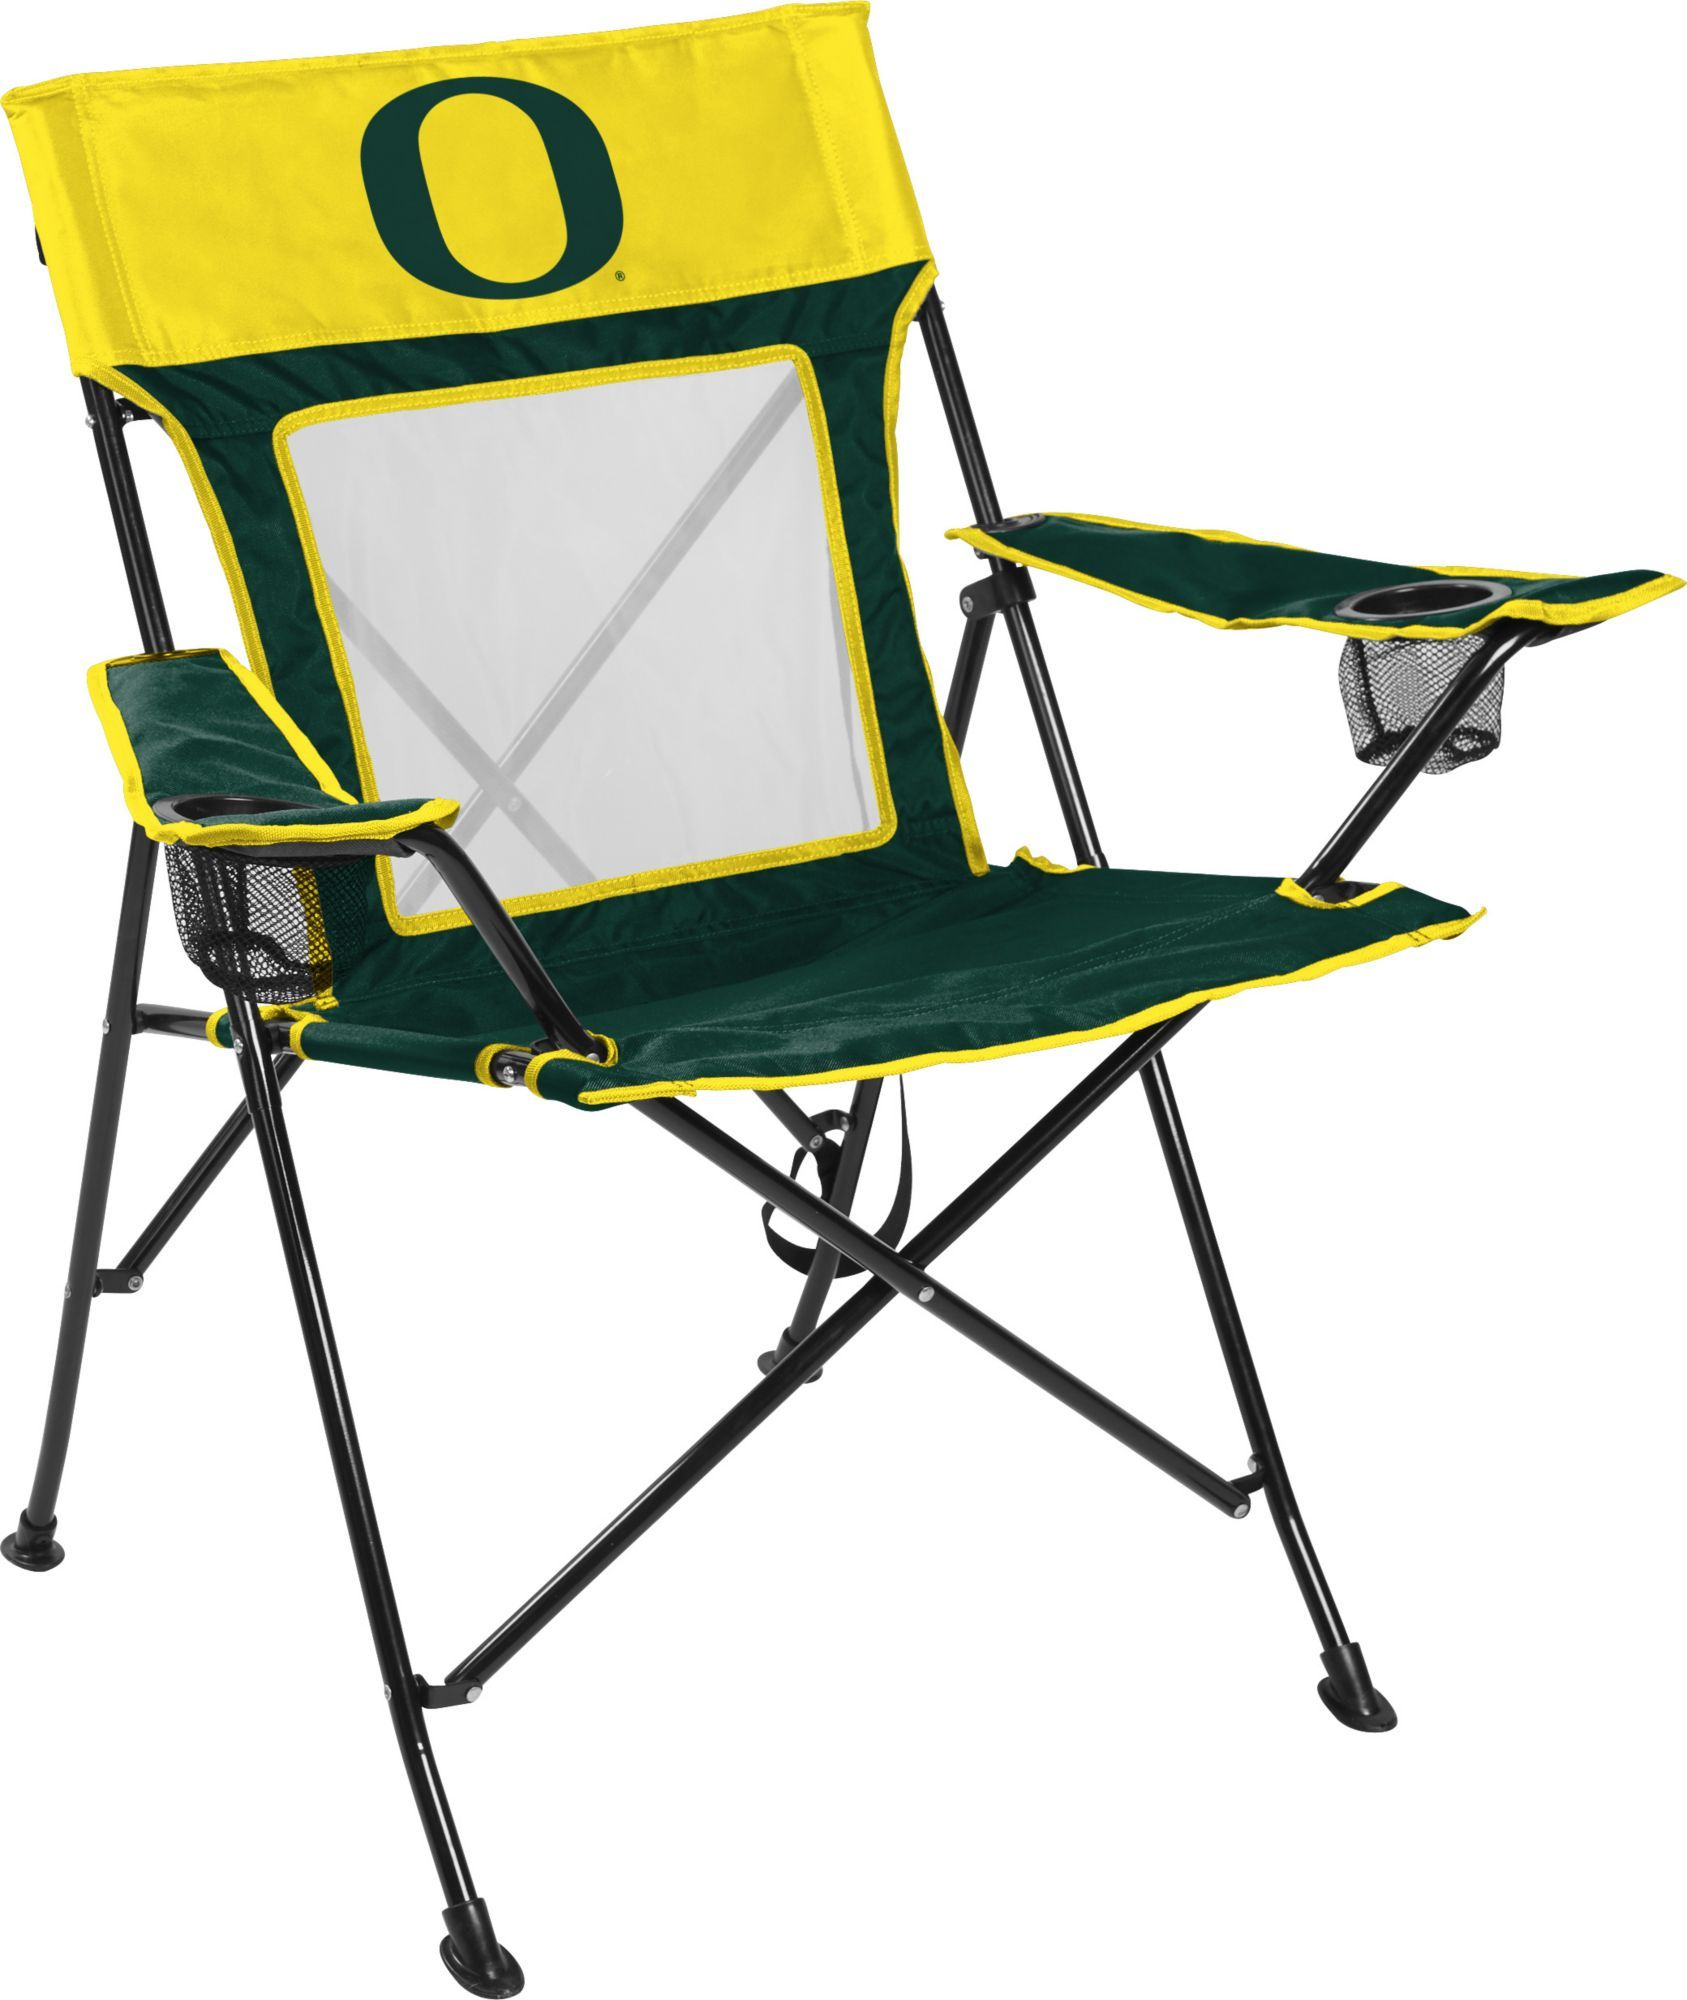 Rawlings Oregon Ducks Game Changer Chair Indianapolis Colts